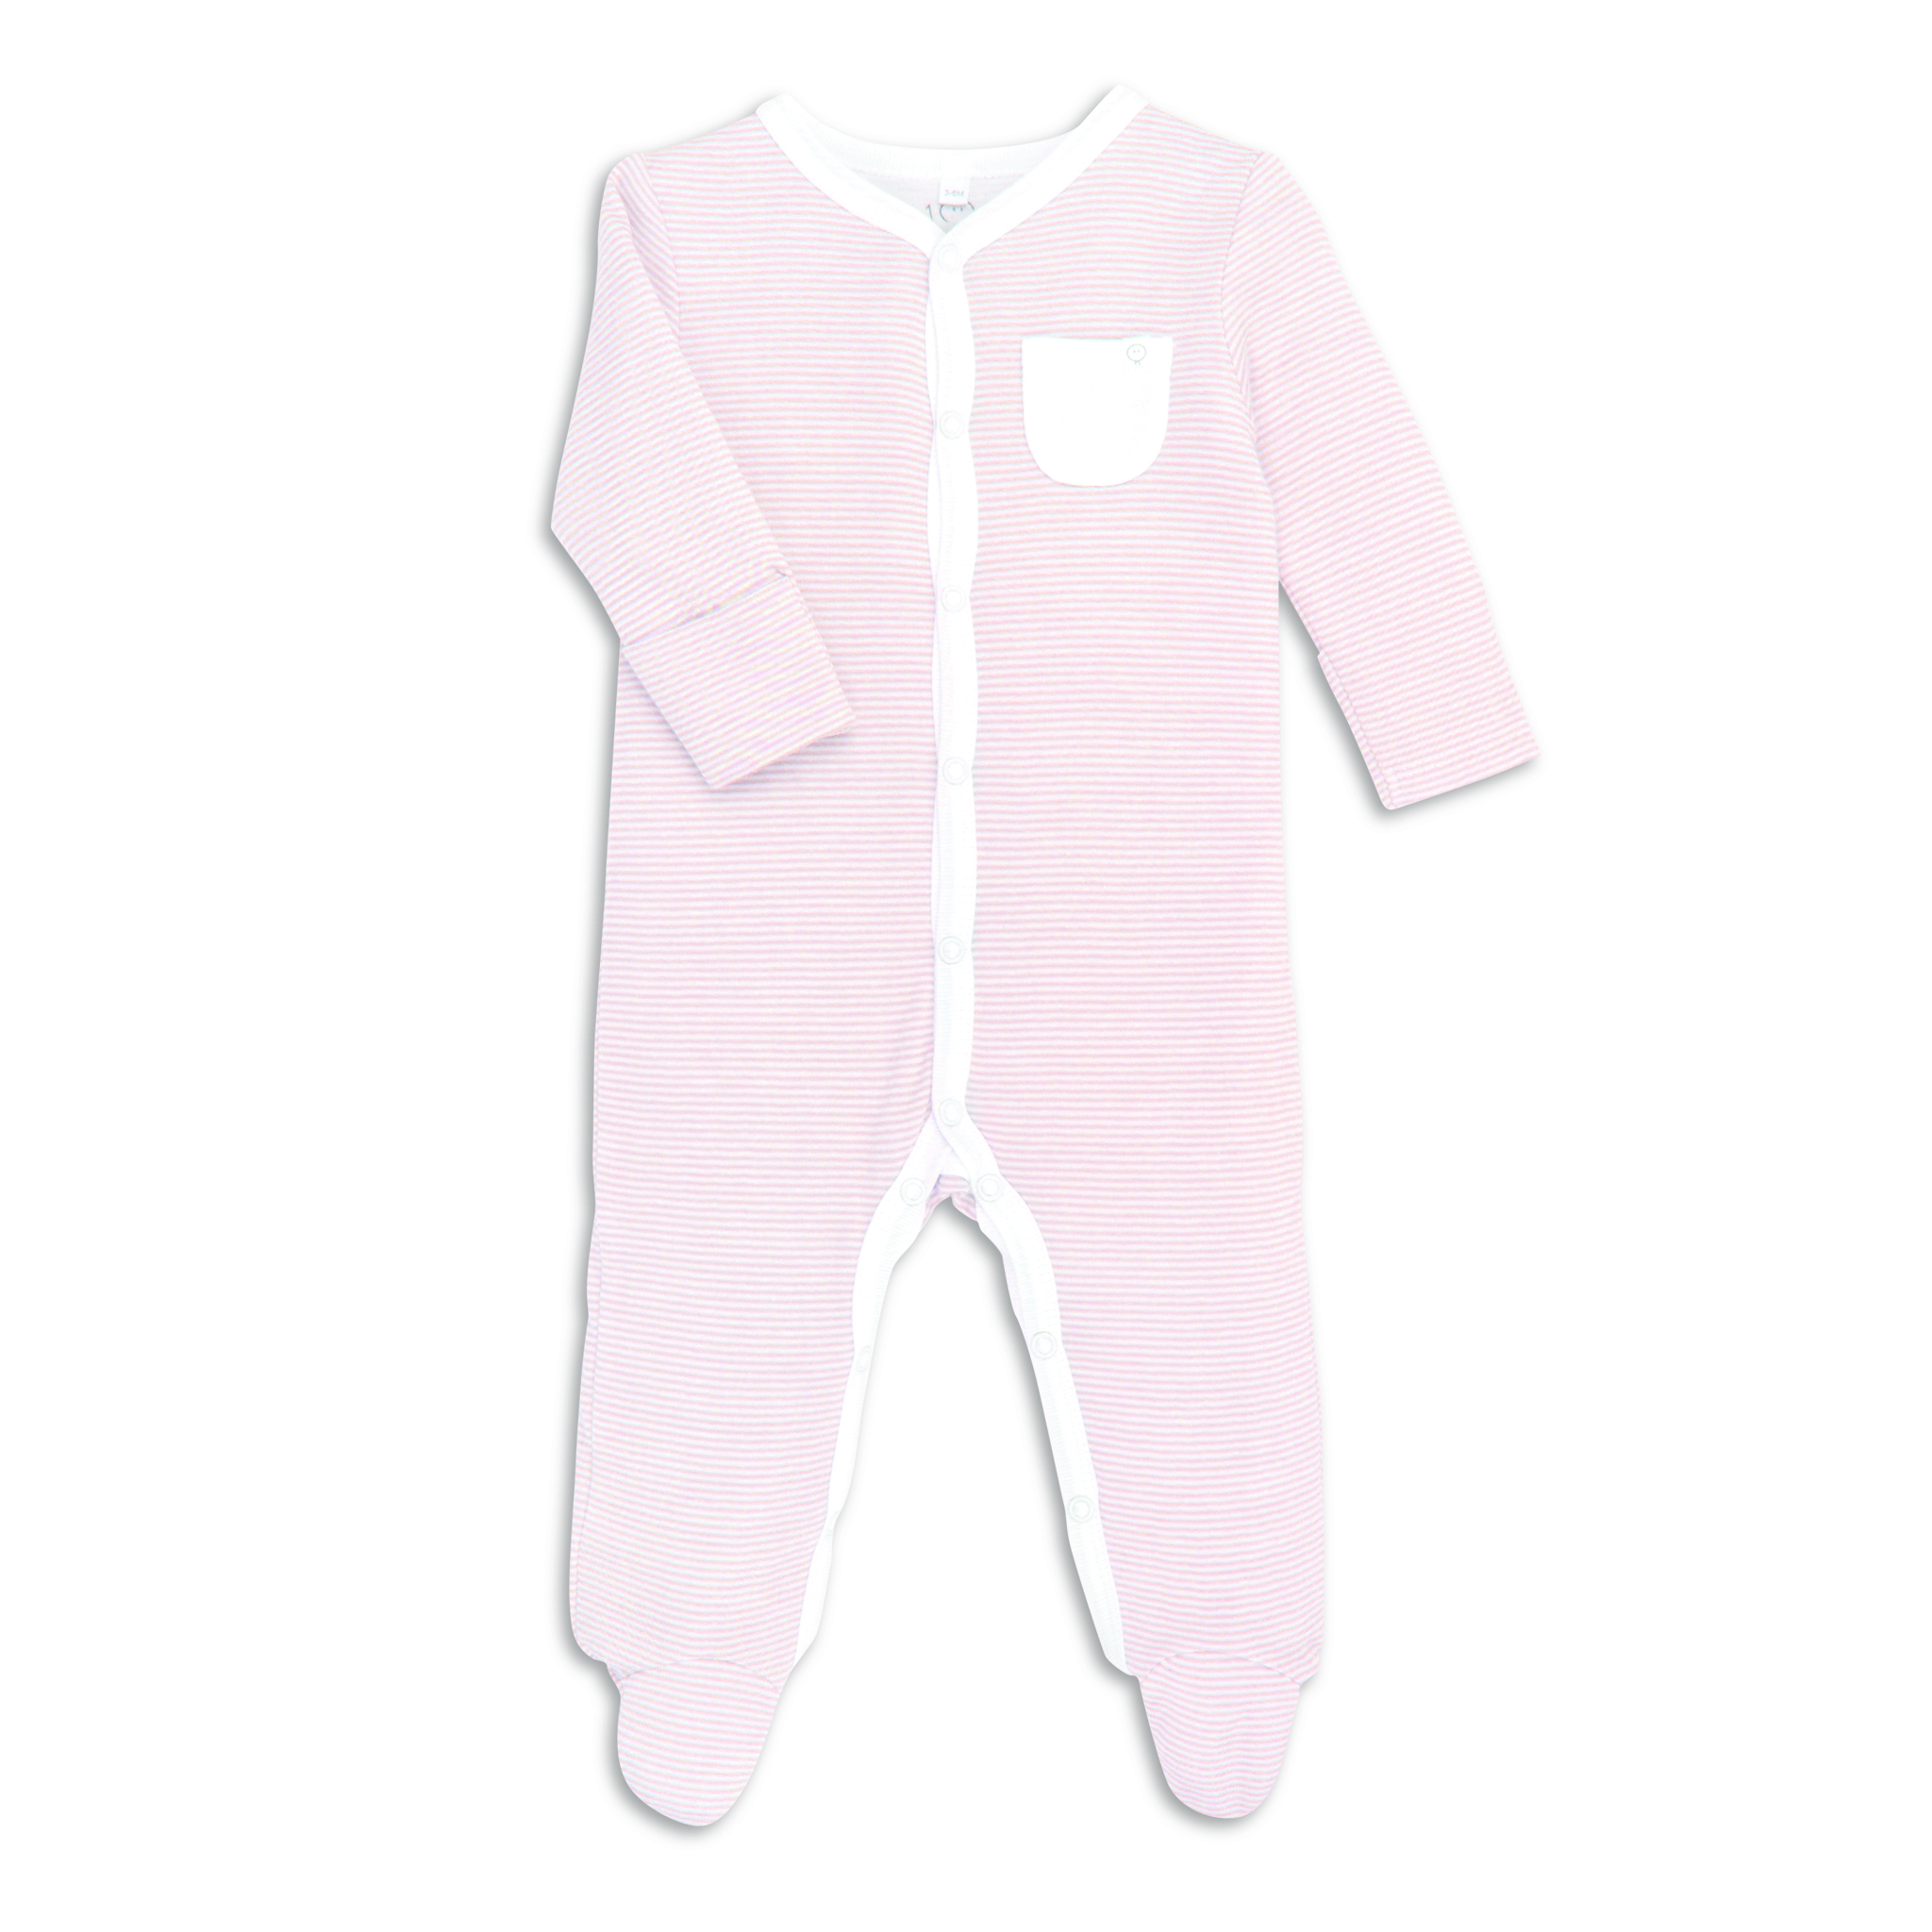 Mori Pink - Sleepsuit Front Opening Pink - Clothing